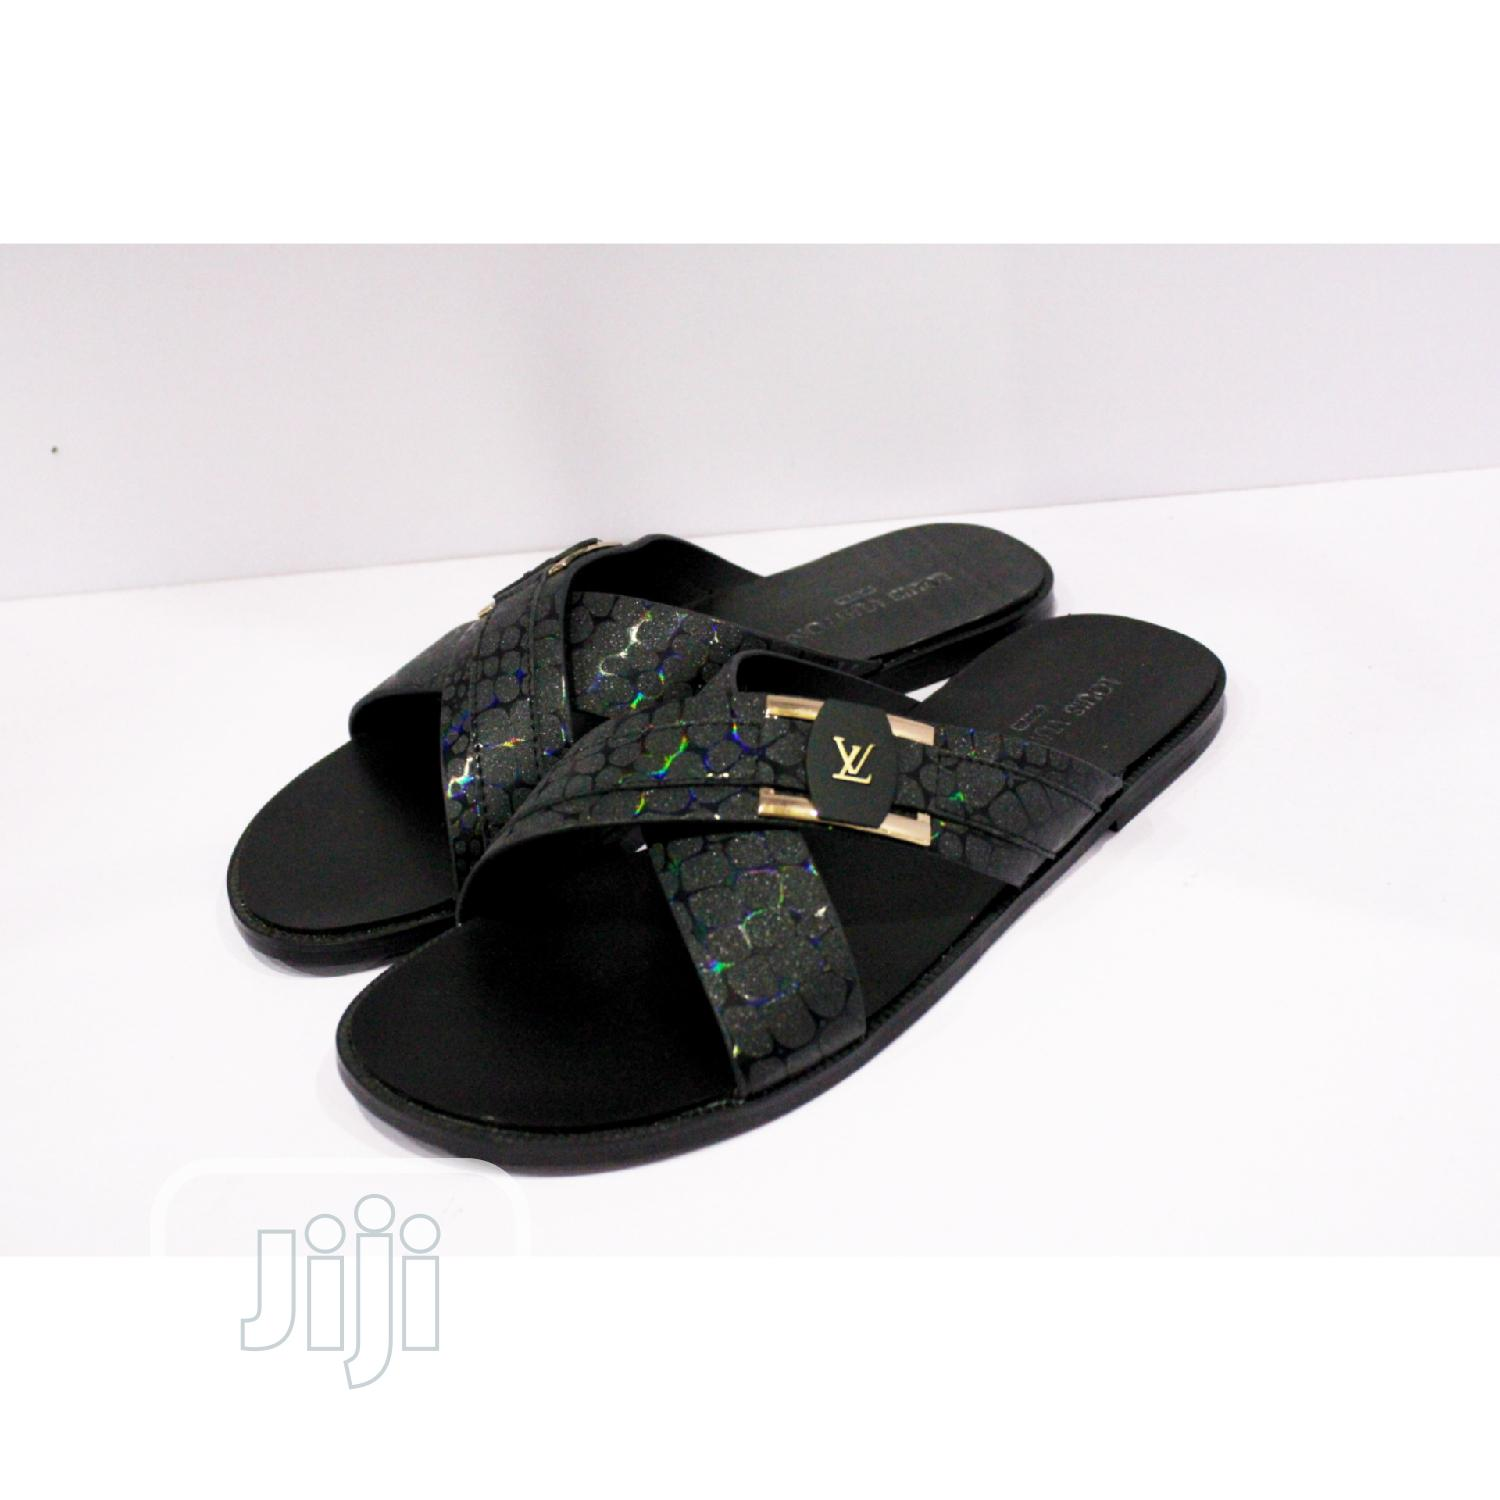 Louis Vuitton Slippers | Shoes for sale in Lekki, Lagos State, Nigeria